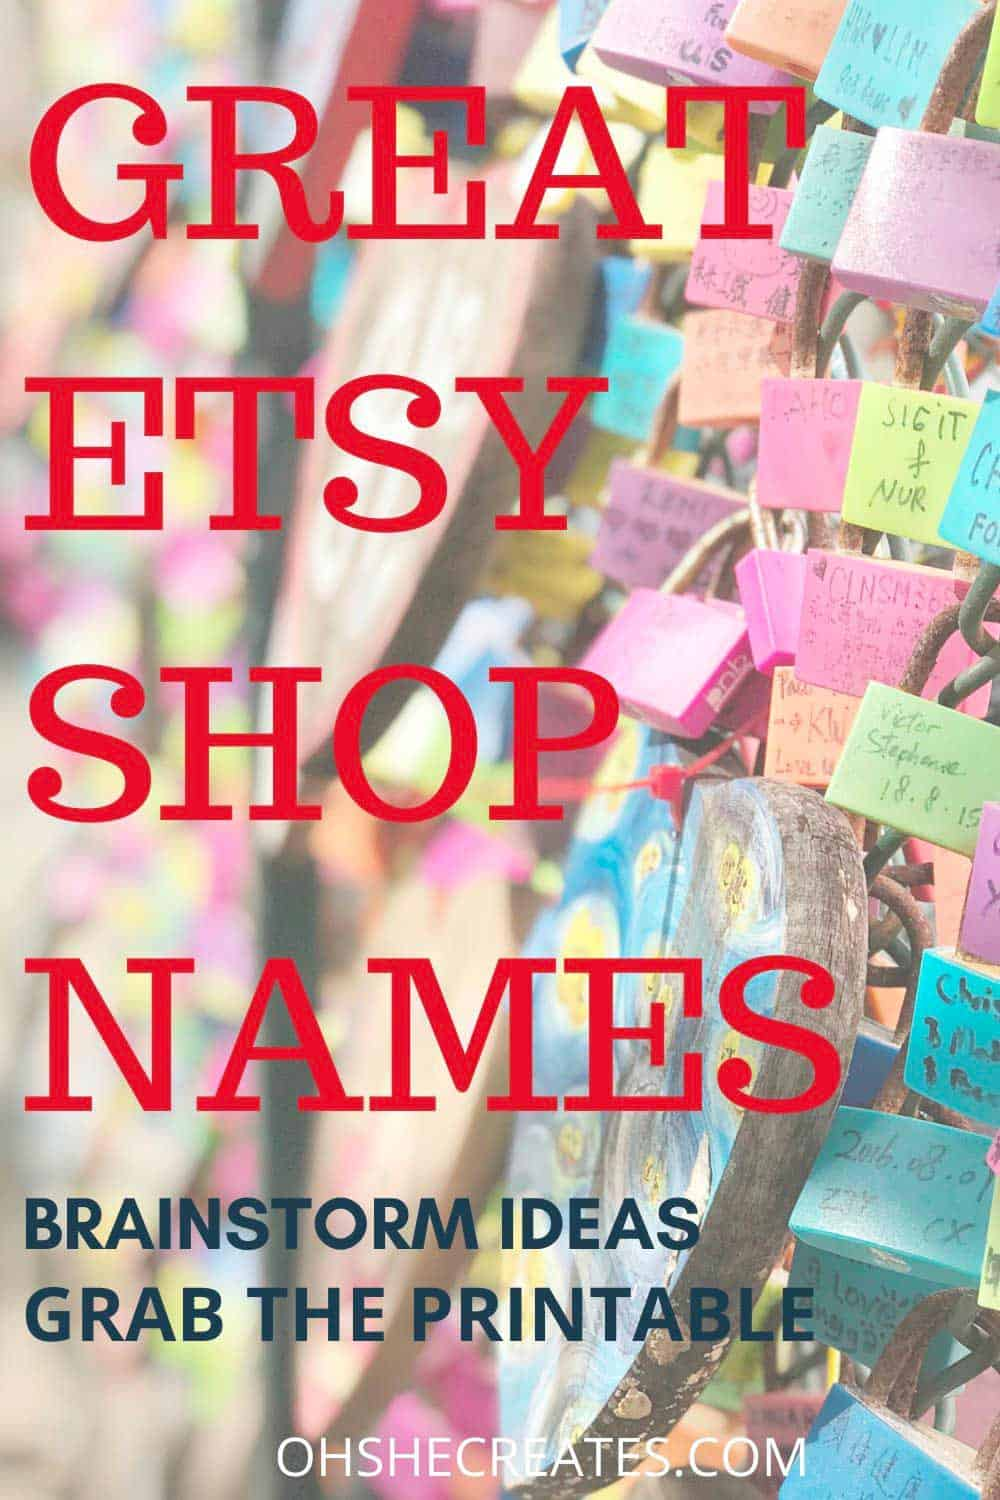 Text Great etsy shop names with key locks in the background